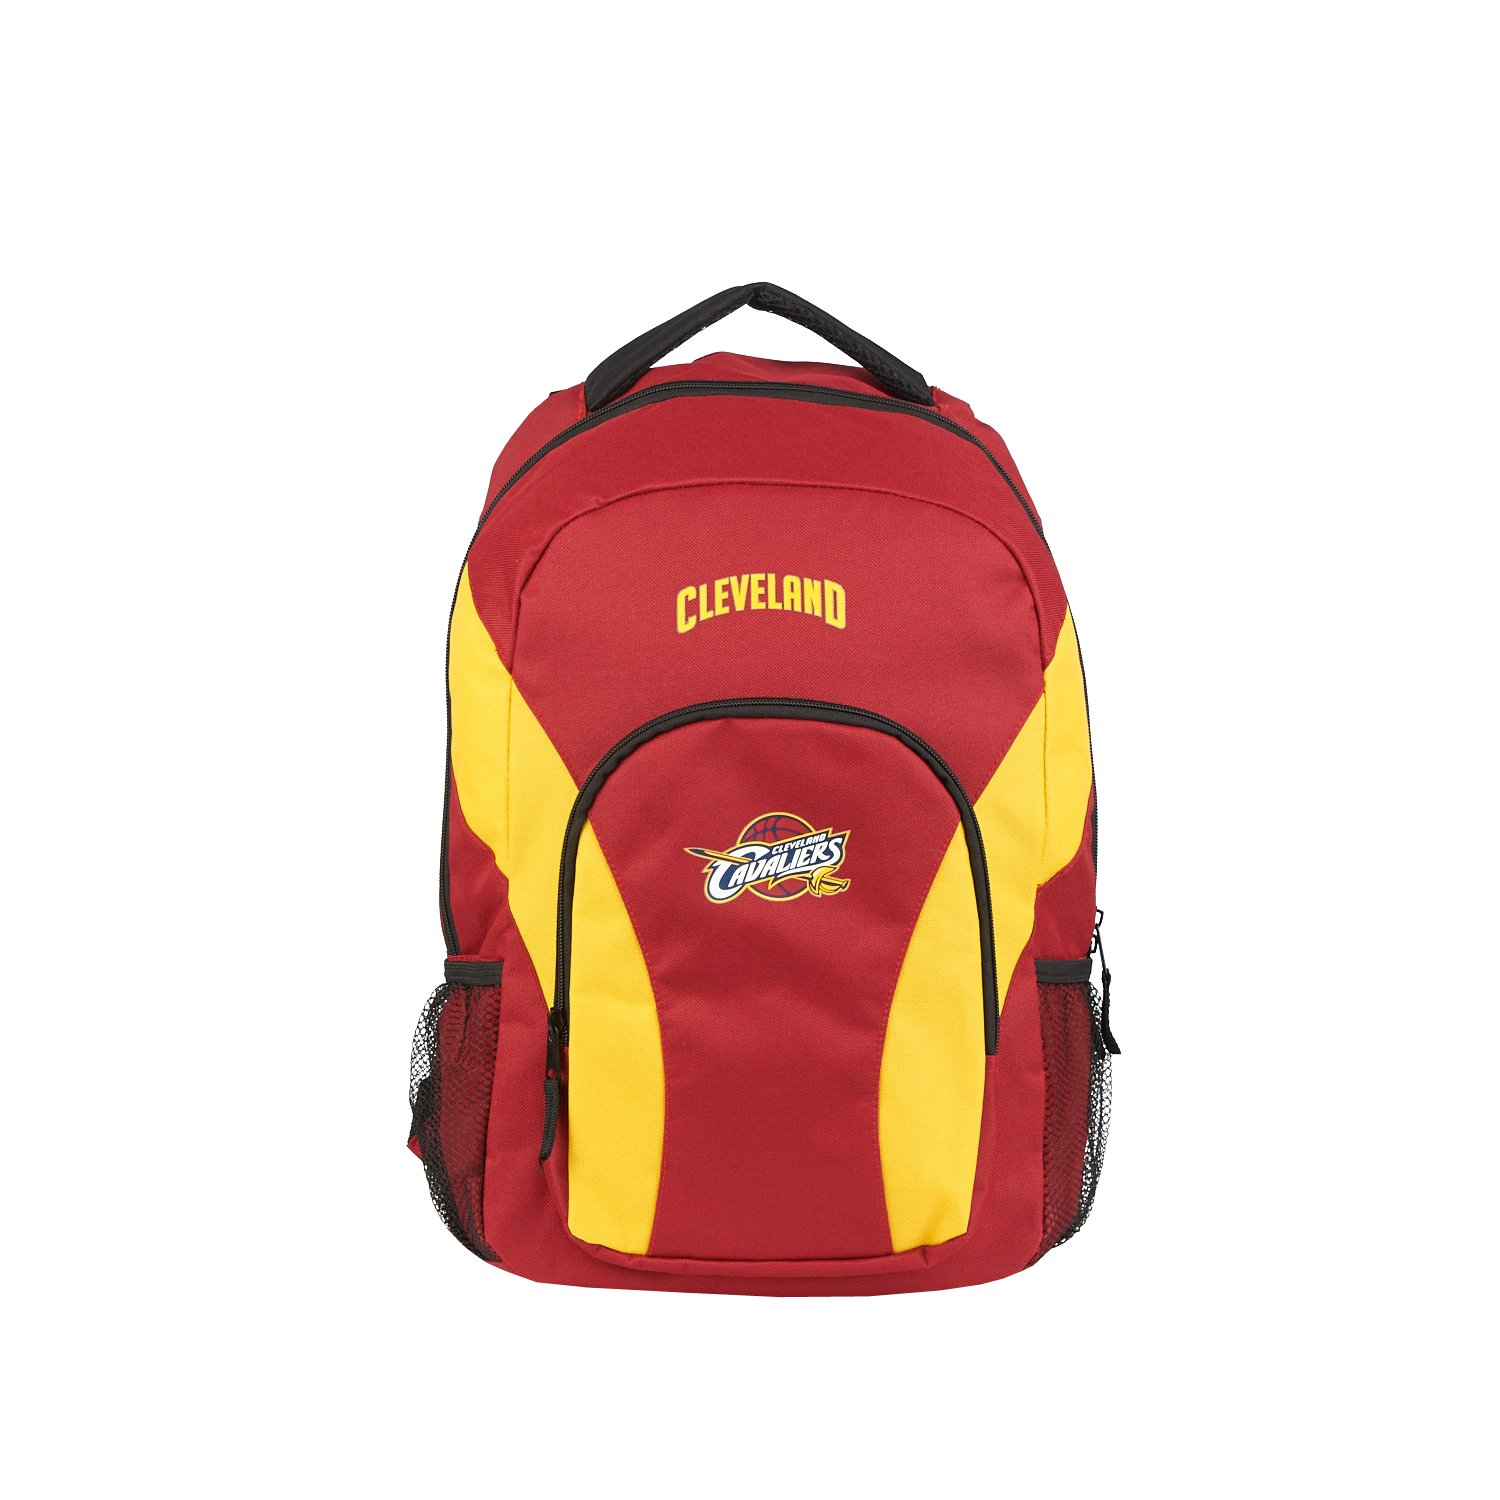 ... classic styles c9f94 d446a Cleveland Cavaliers Backpack Draftday Style  Red and Yellow ClevelandCavaliers ... dba4f6754d